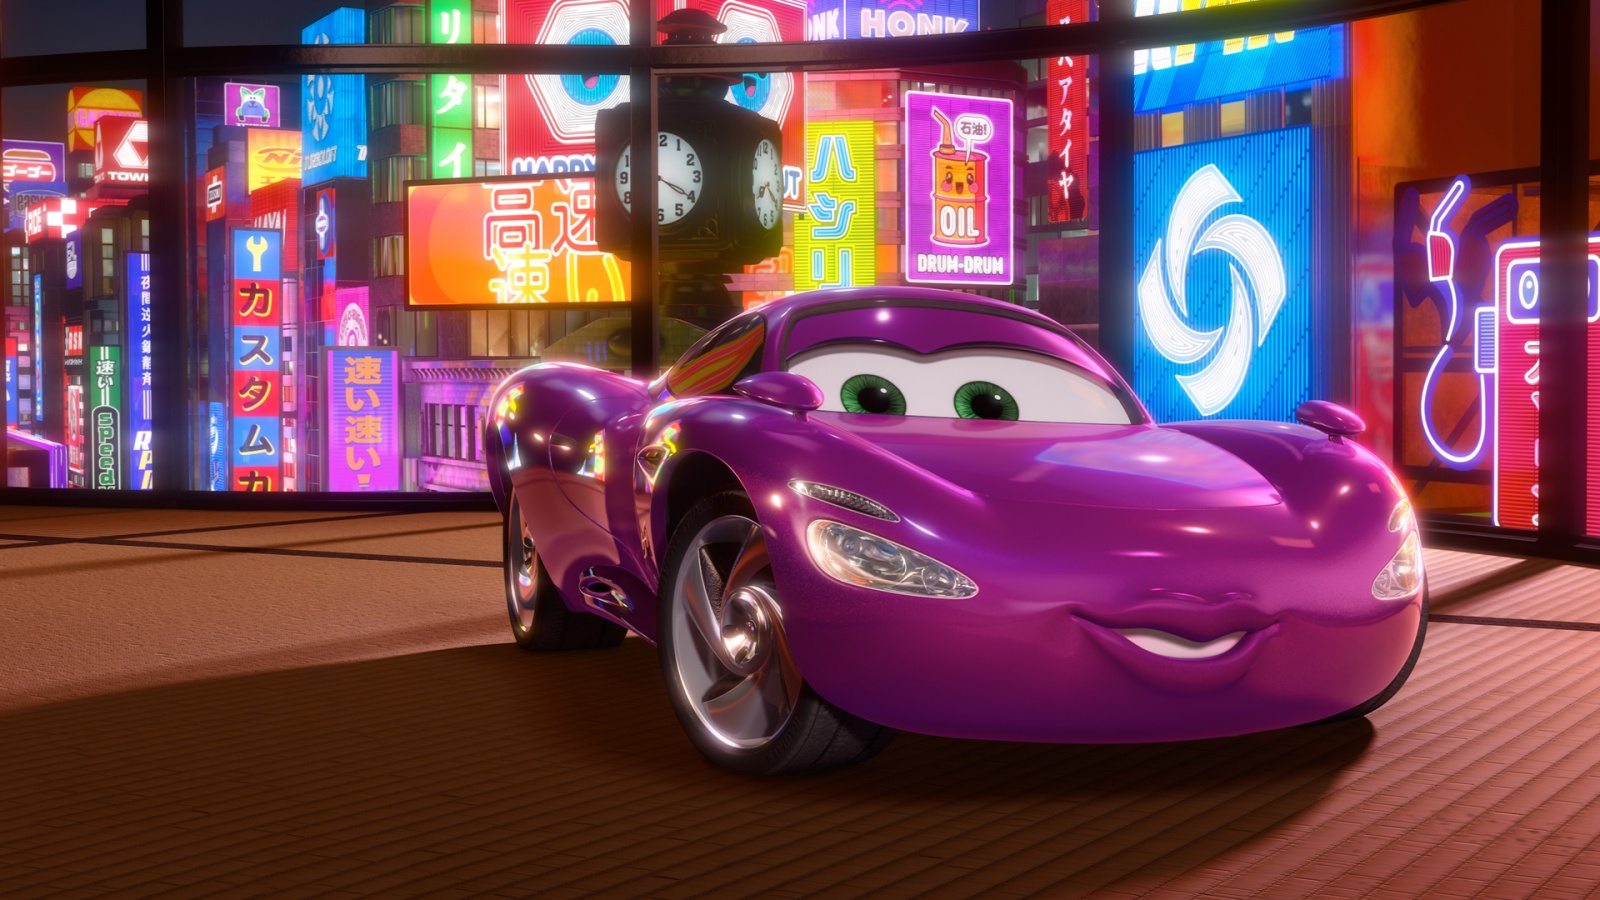 Disney Pixar Cars Wallpapers Free Download Holley Shiftwell In Cars 2 Movie Wallpapers In Jpg Format